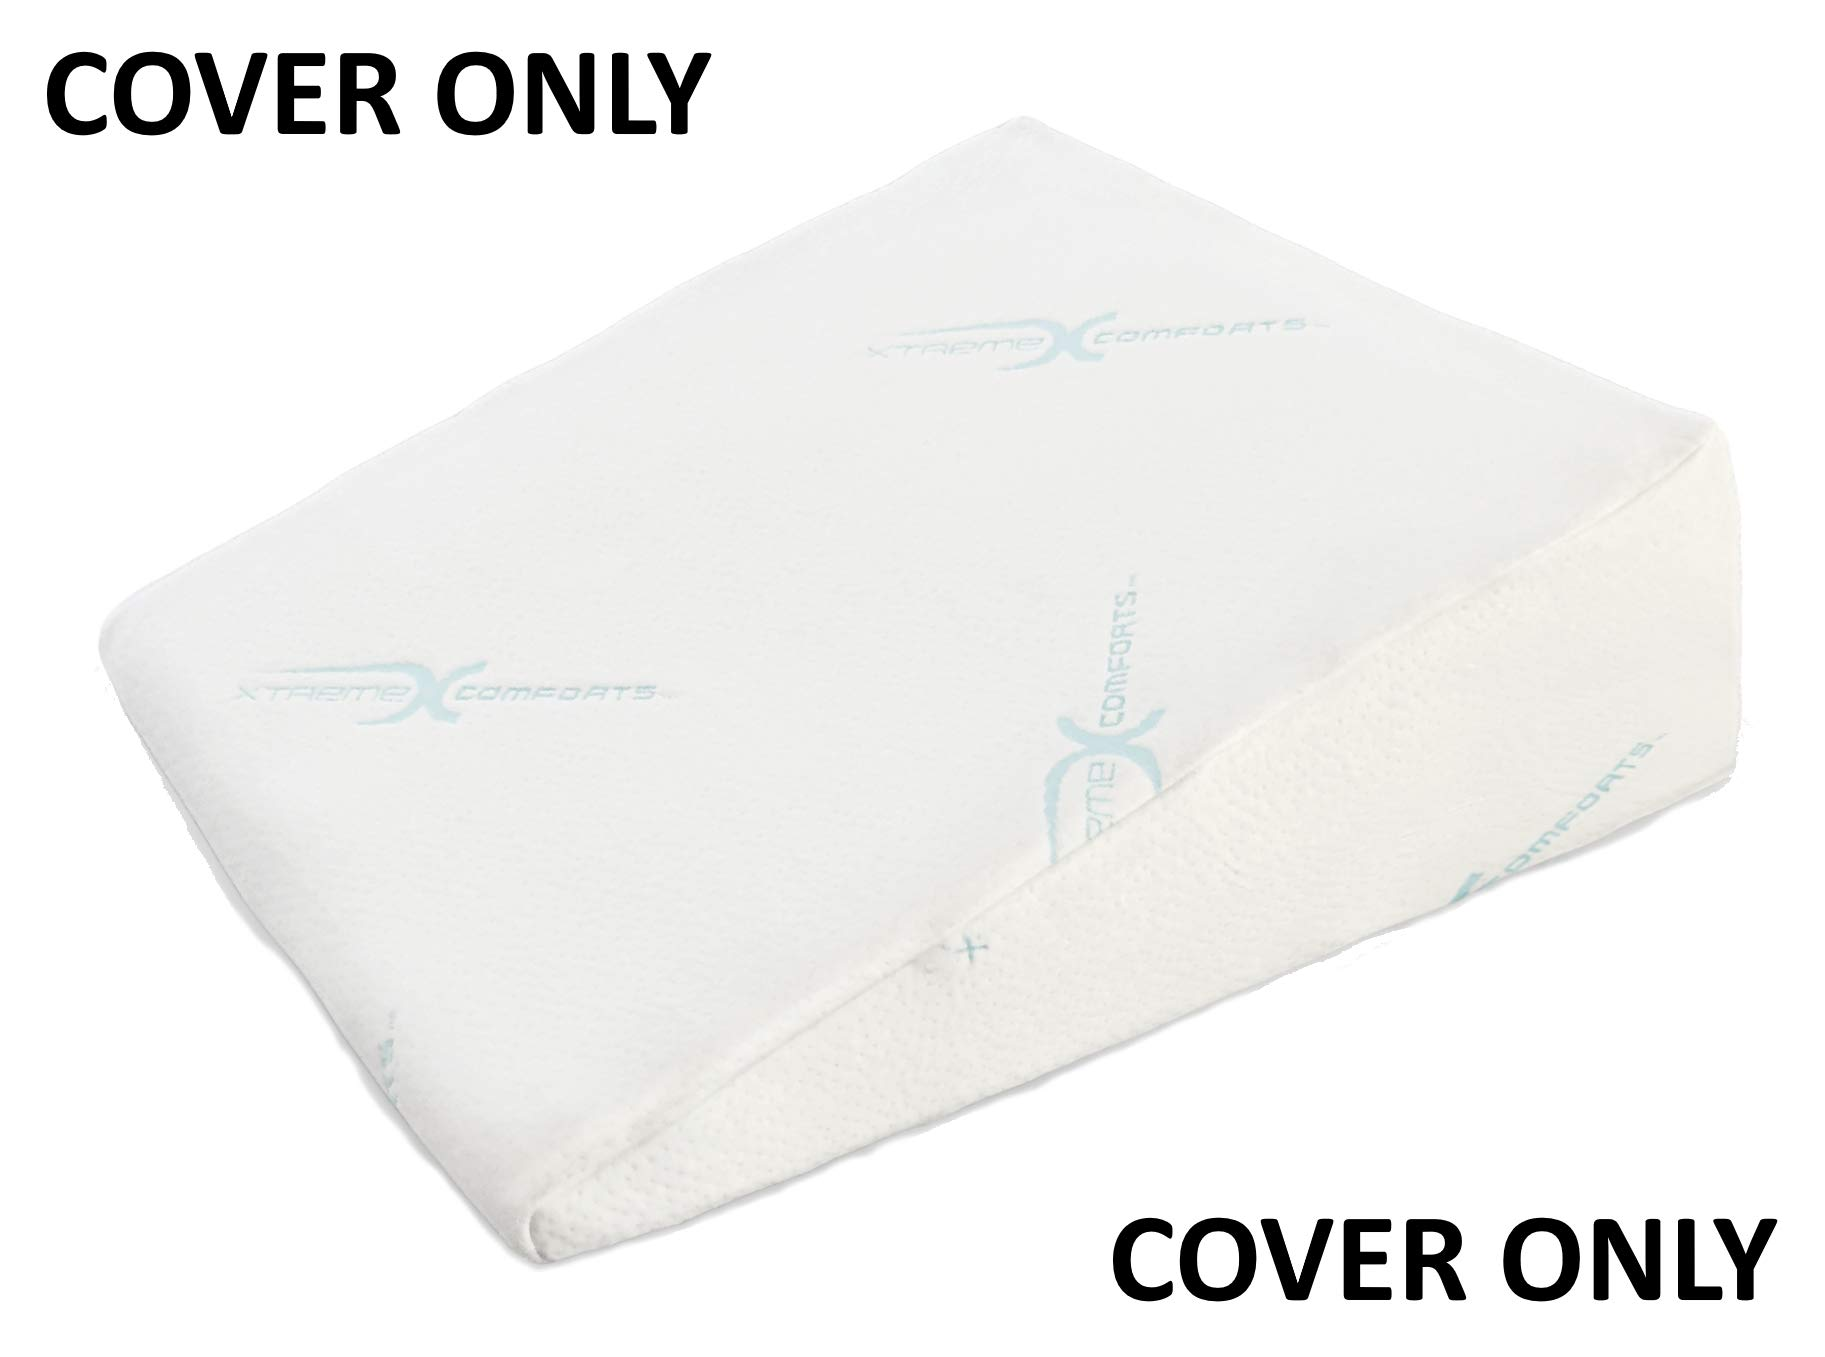 Xtreme Comforts Hypoallergenic Memory Foam Bed Wedge Bamboo Cover Designed to Fit Our (27 'x 25'' x 7'') Bed Wedge Pillow